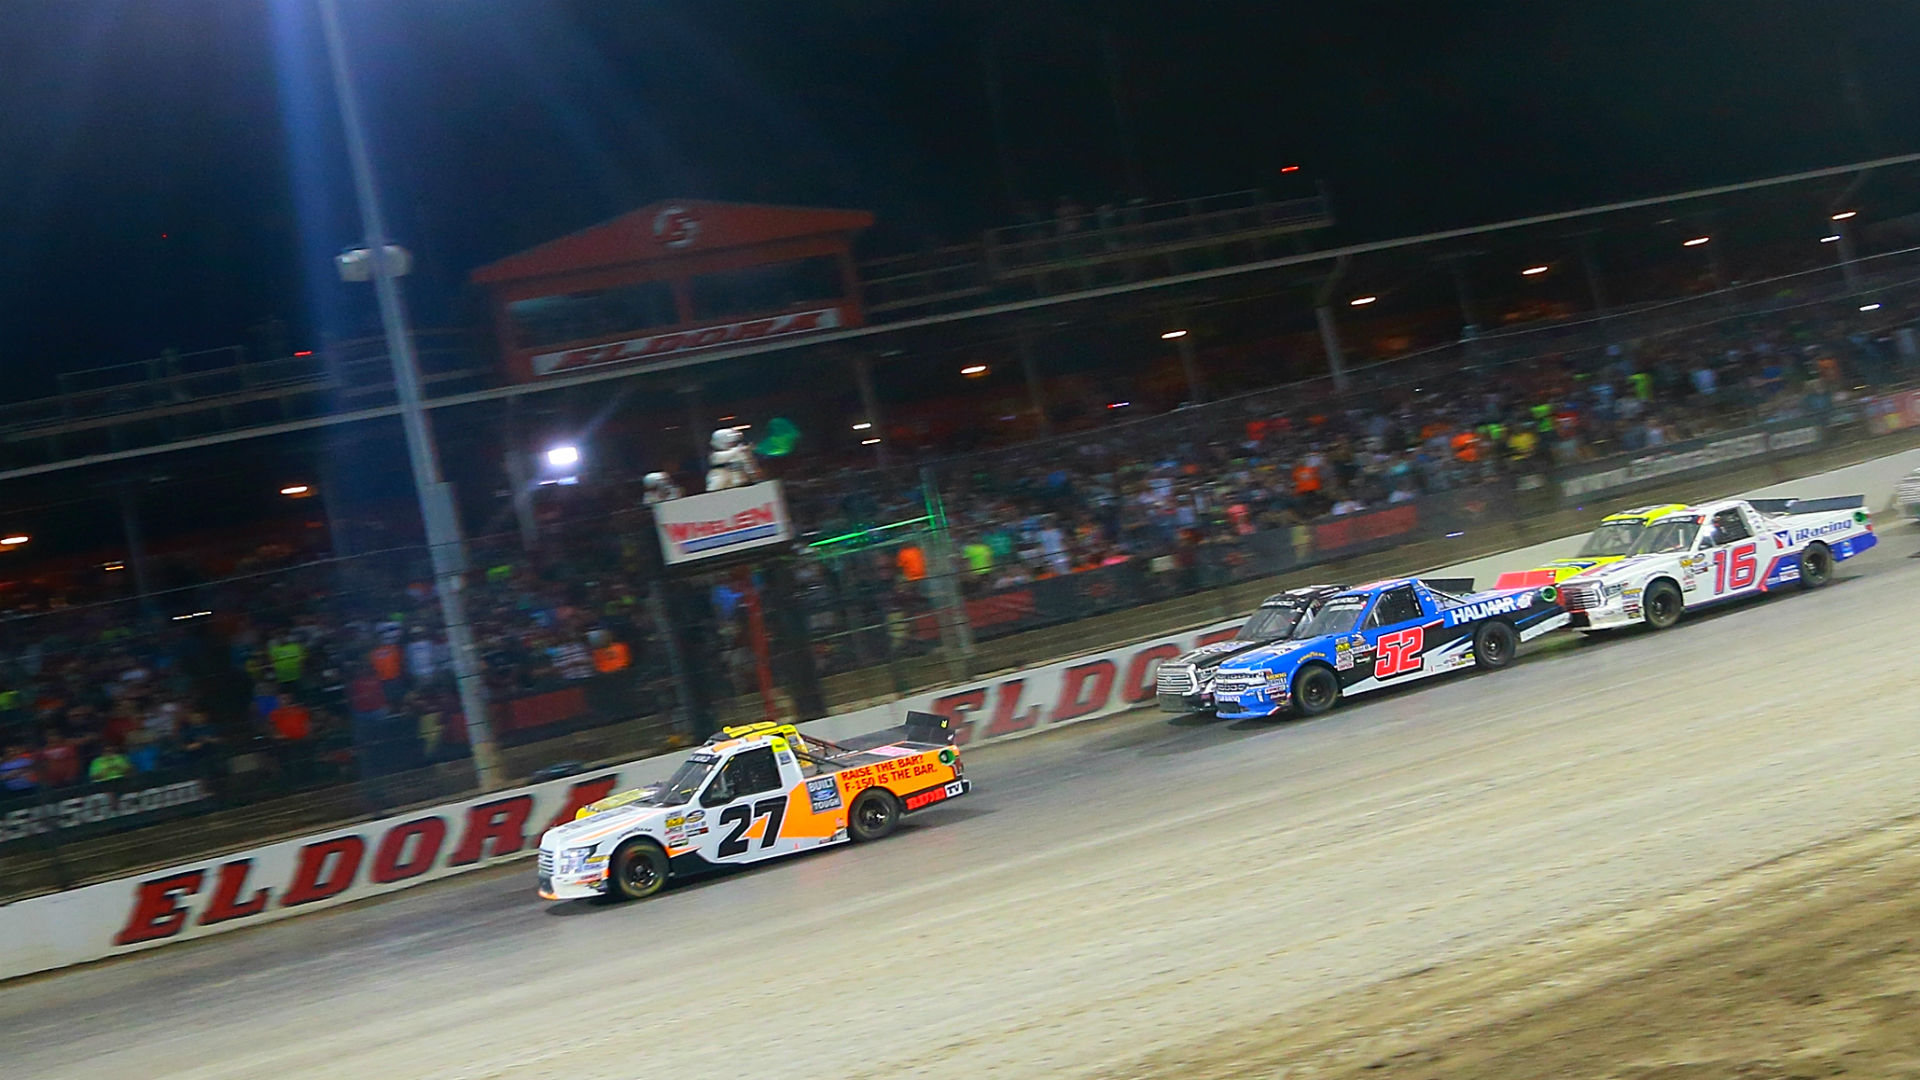 Eldora truck race: TV channel, schedule, qualifying format for NASCAR's 2019 Dirt Derby – Sporting News